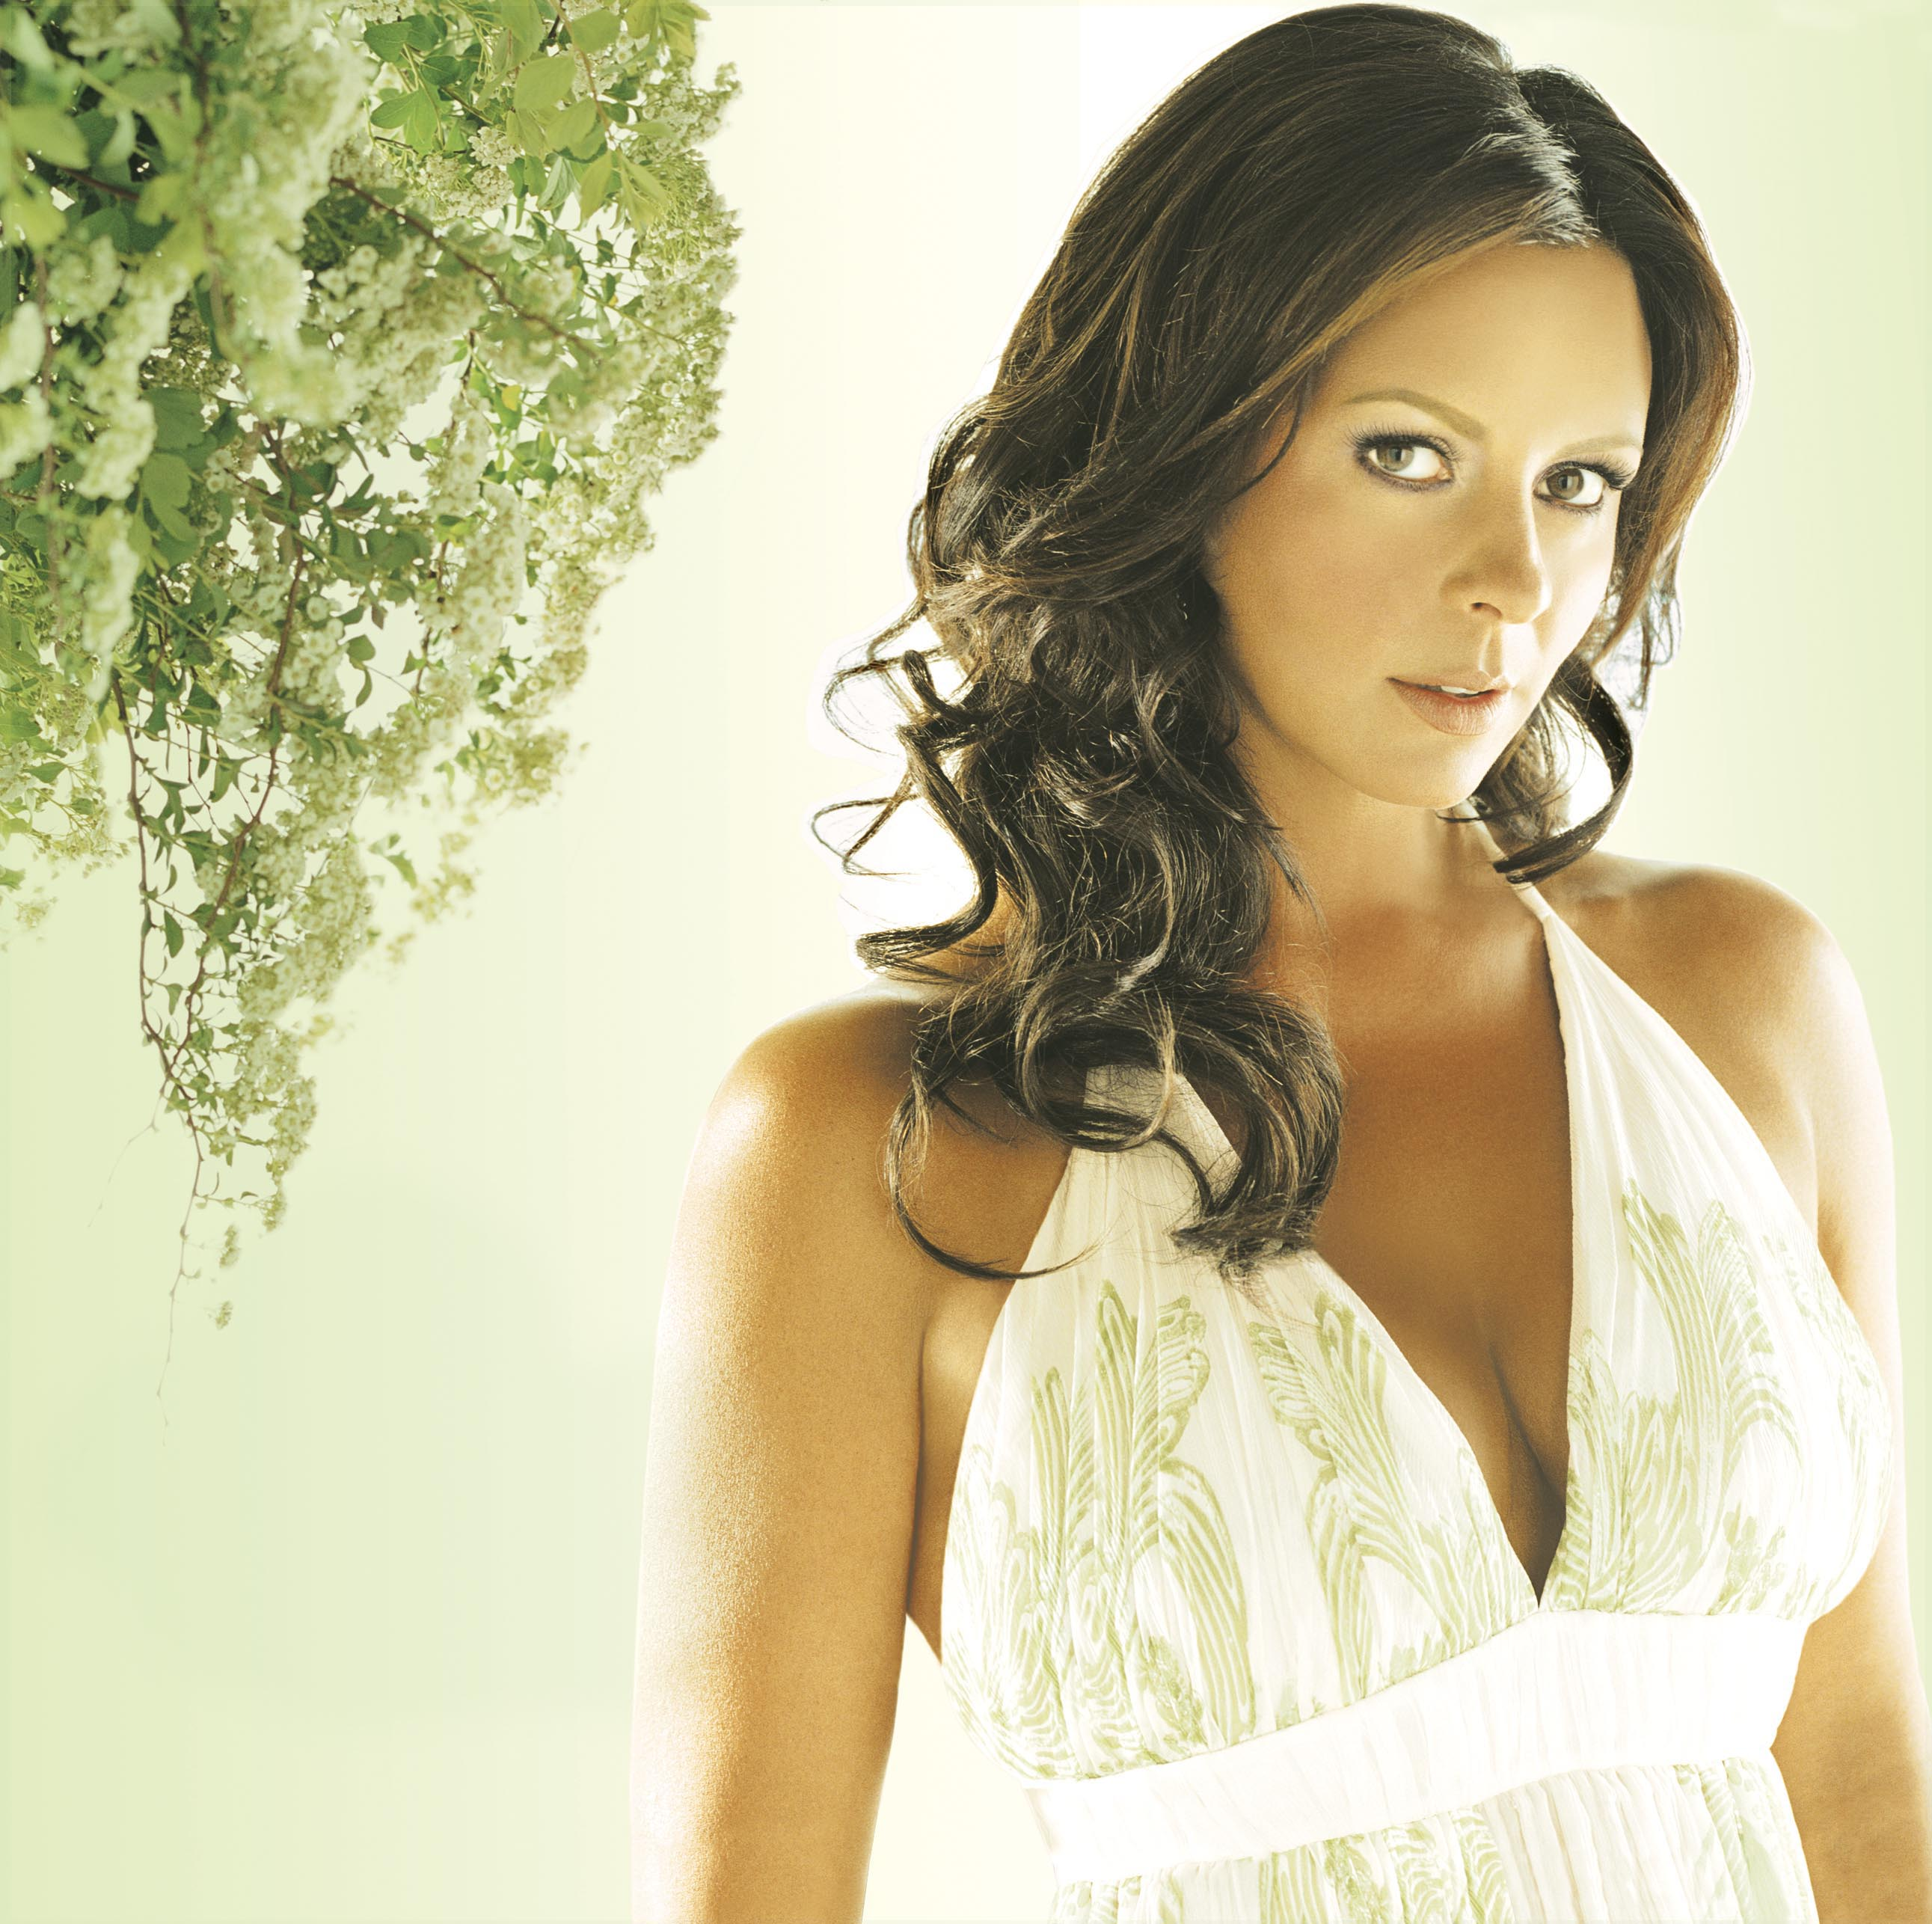 sara evans - a little bit strongersara evans - a little bit stronger, sara evans - slow me down, sara evans wiki, sara evans youtube, sara evans shame about that, sara evans - suds in the bucket, sara evans one tree hill, sara evans 2014, sara evans - cheatin', sara evans - no place that far, sara evans discogs, sara evans - perfect, sara evans 3 doors down, sara evans - born to fly, sara evans best songs, sara evans saints and angels, sara evans love you with all my heart lyrics, sara evans lyrics, sara evans coalmine, sara evans stronger